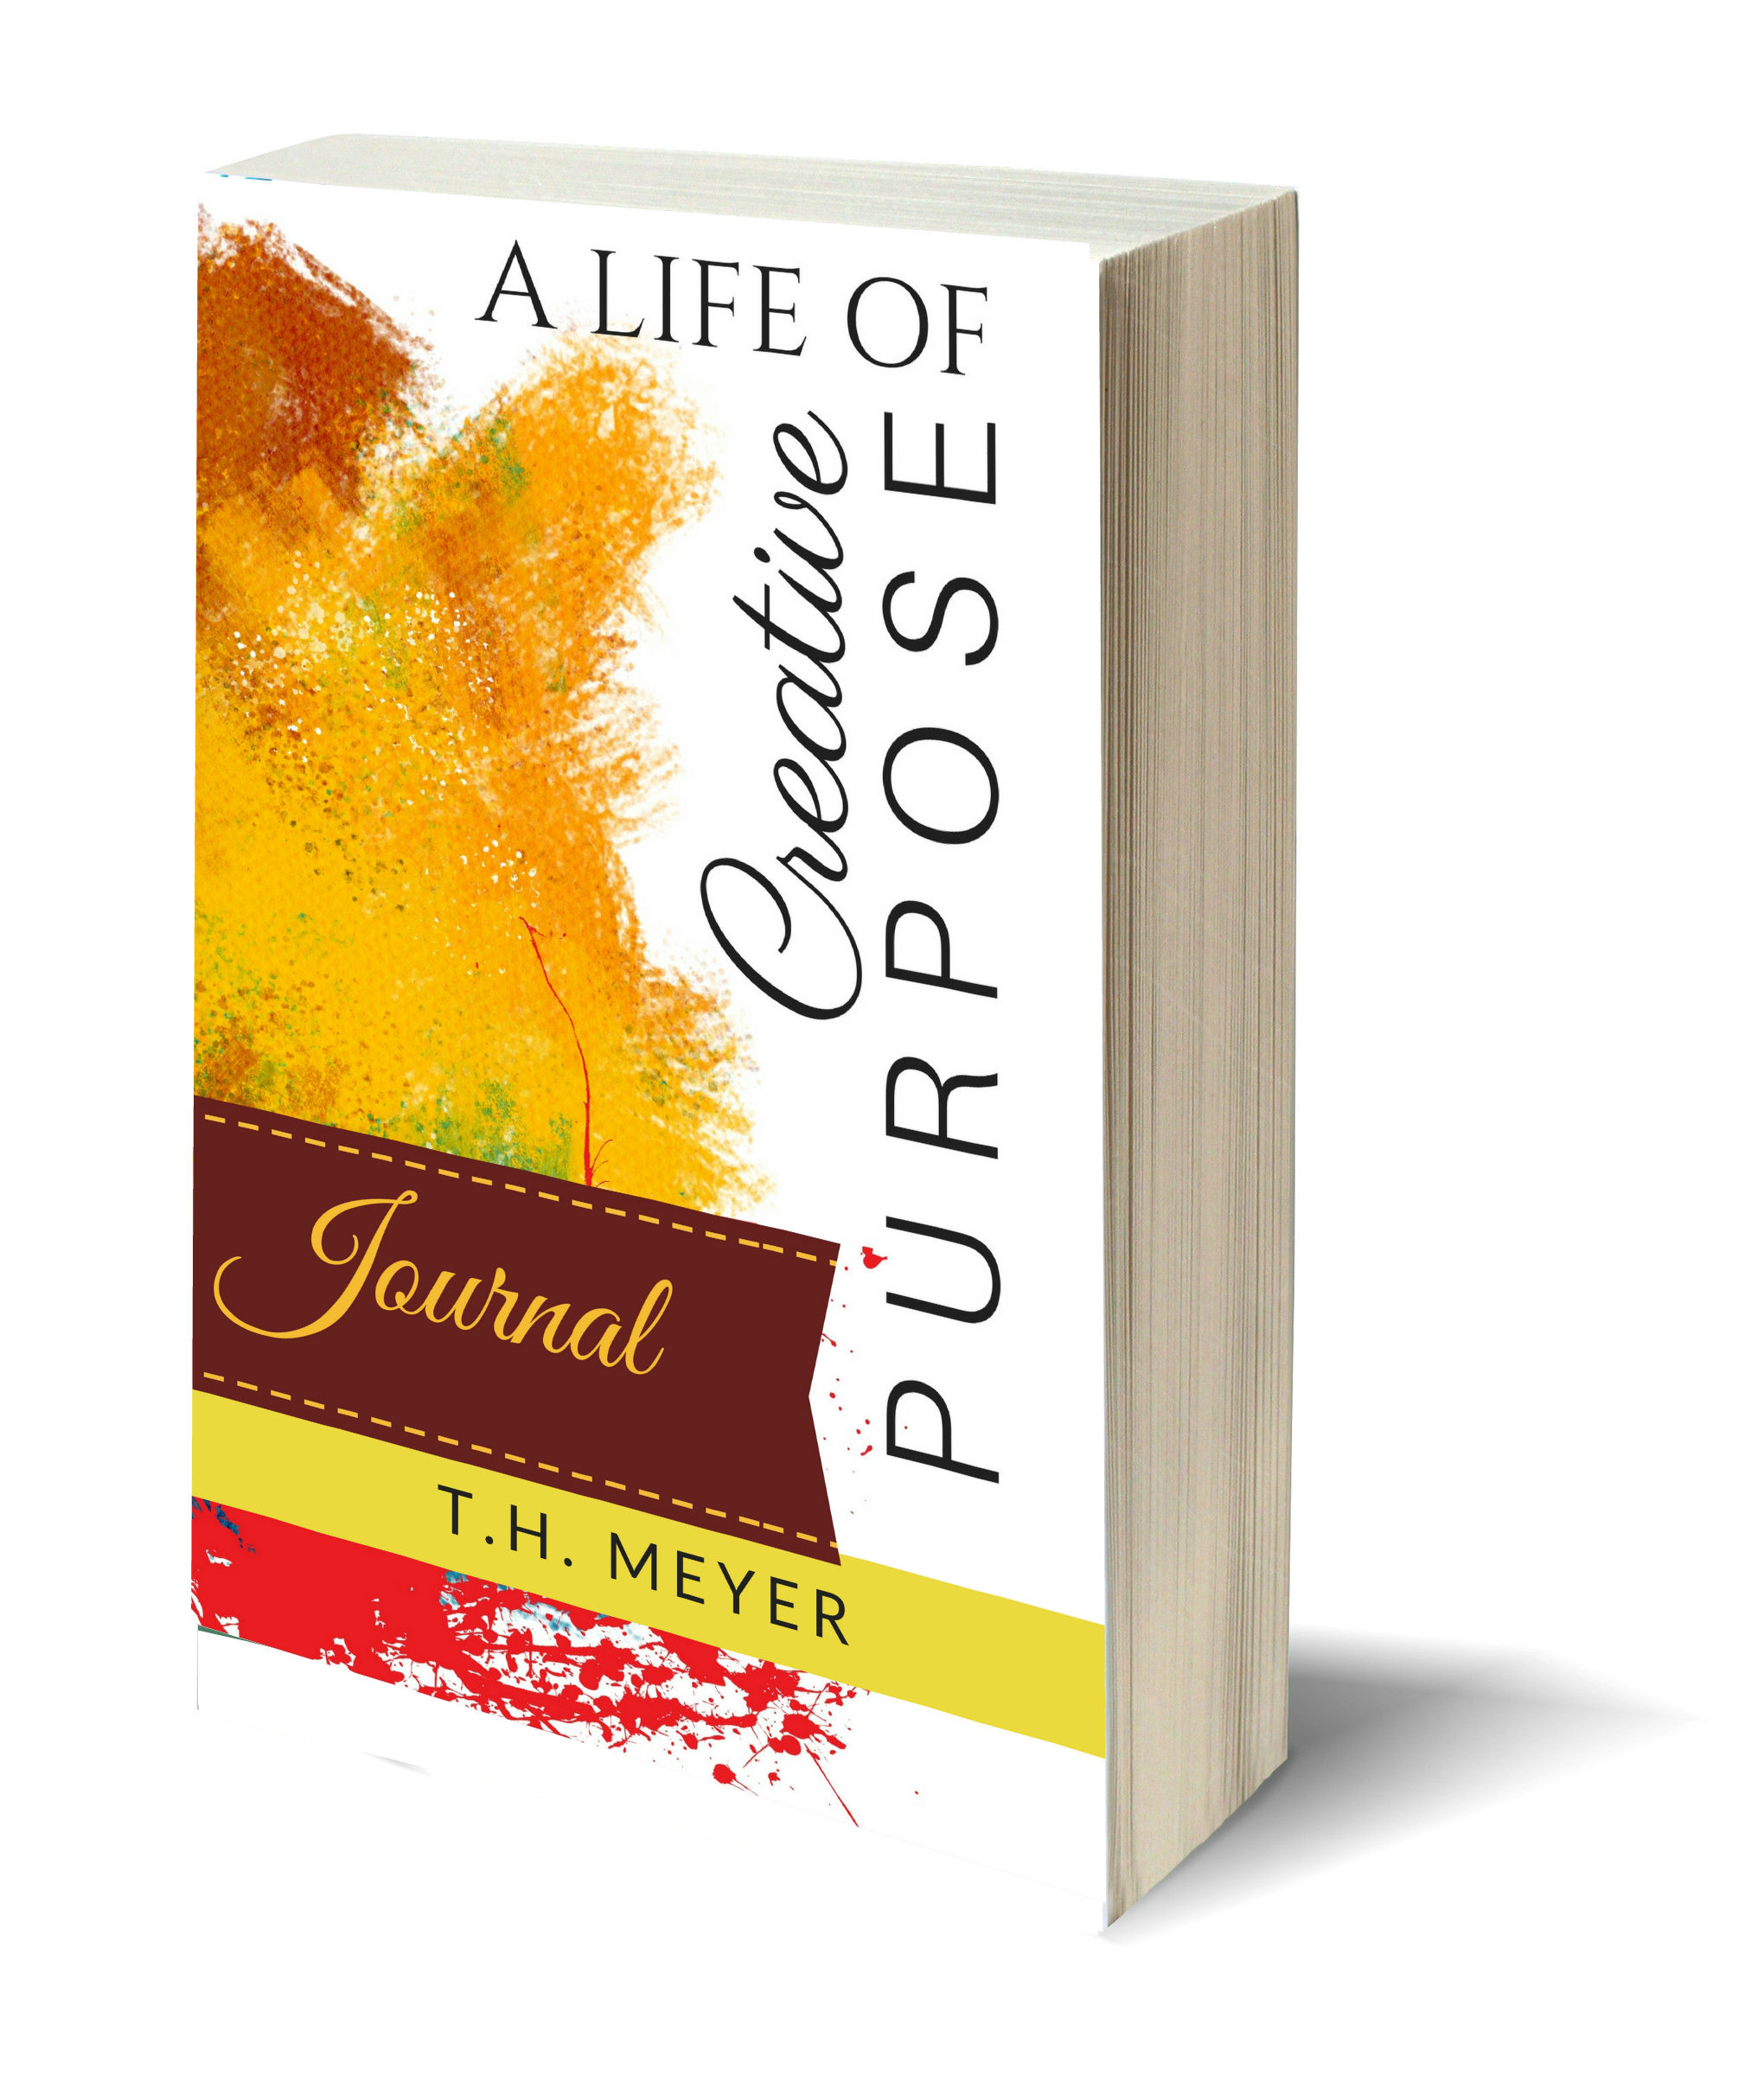 #FREE printable 81-page full length PDF Journal that can be added inside a binder with inspiring or thoughtful quotes from the book A Life of Creative Purpose by TH Meyer